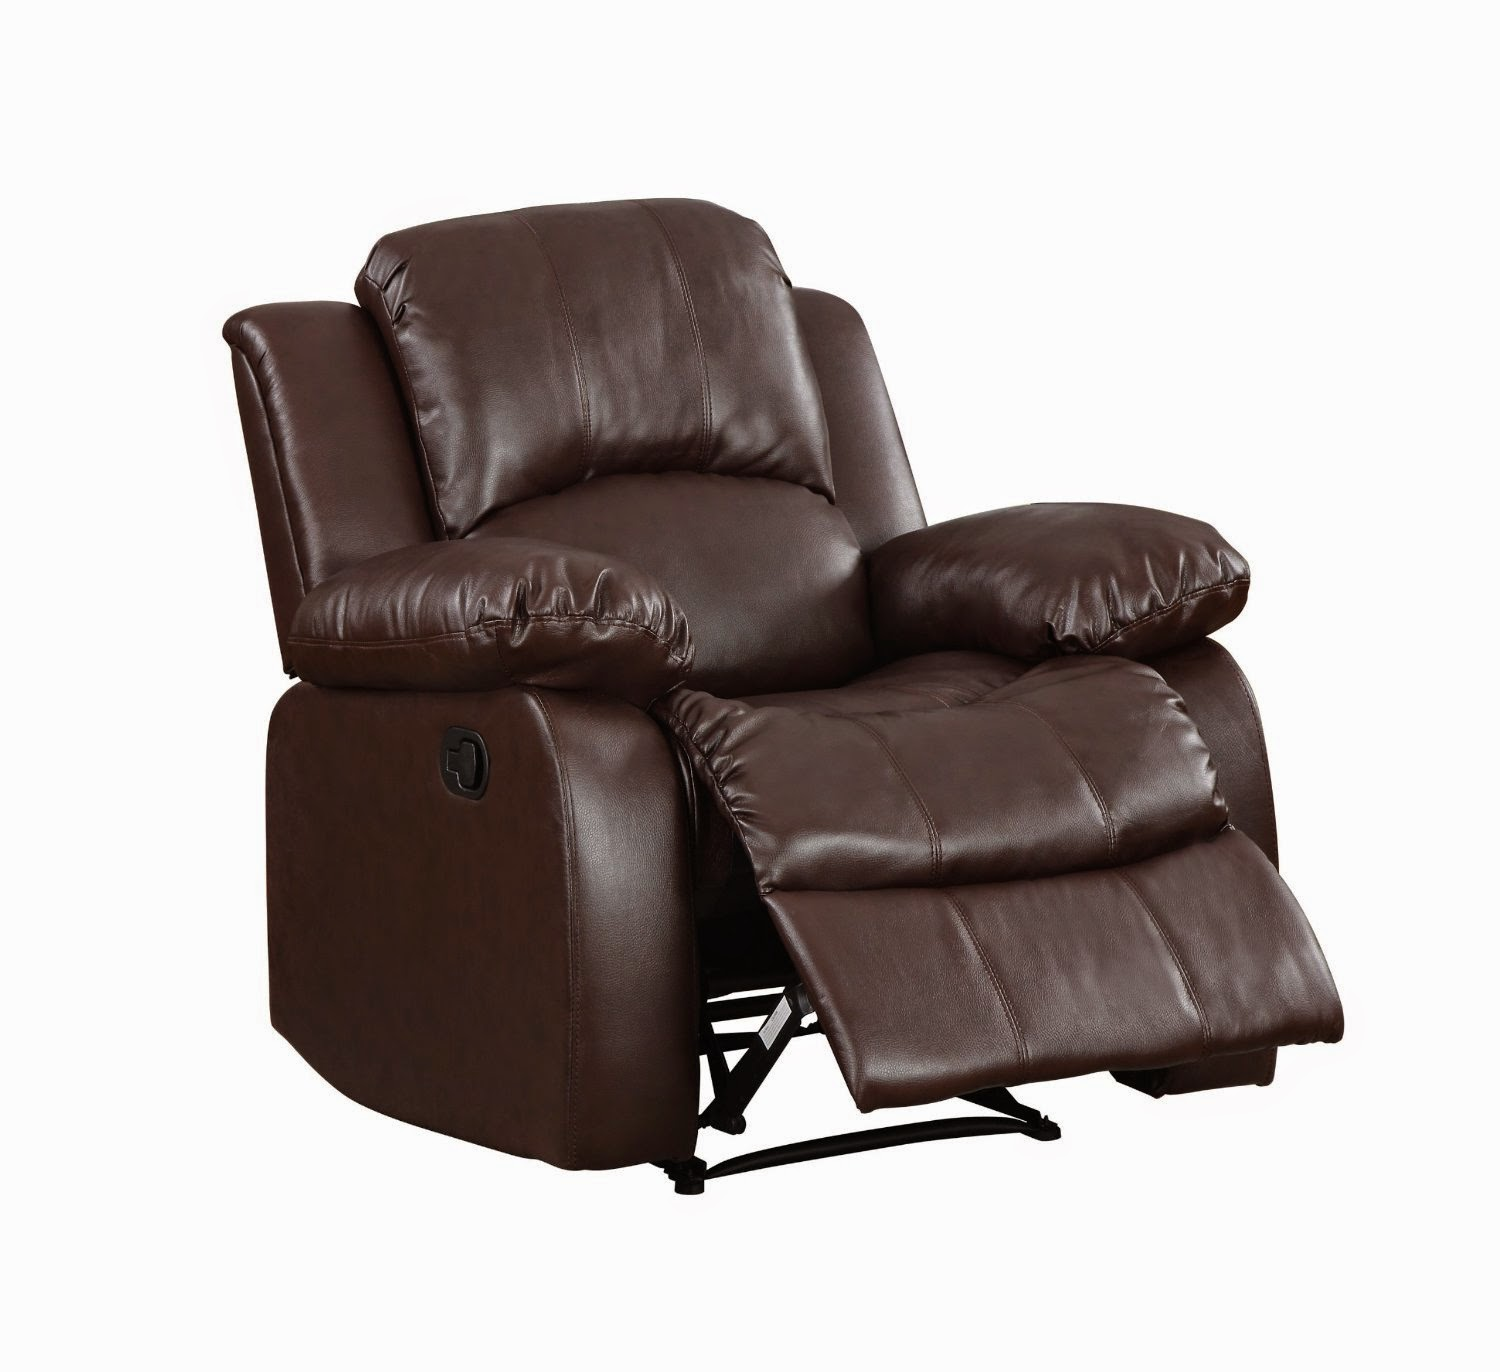 Cheap reclining sofas sale leather reclining sofa costco Leather loveseat recliners